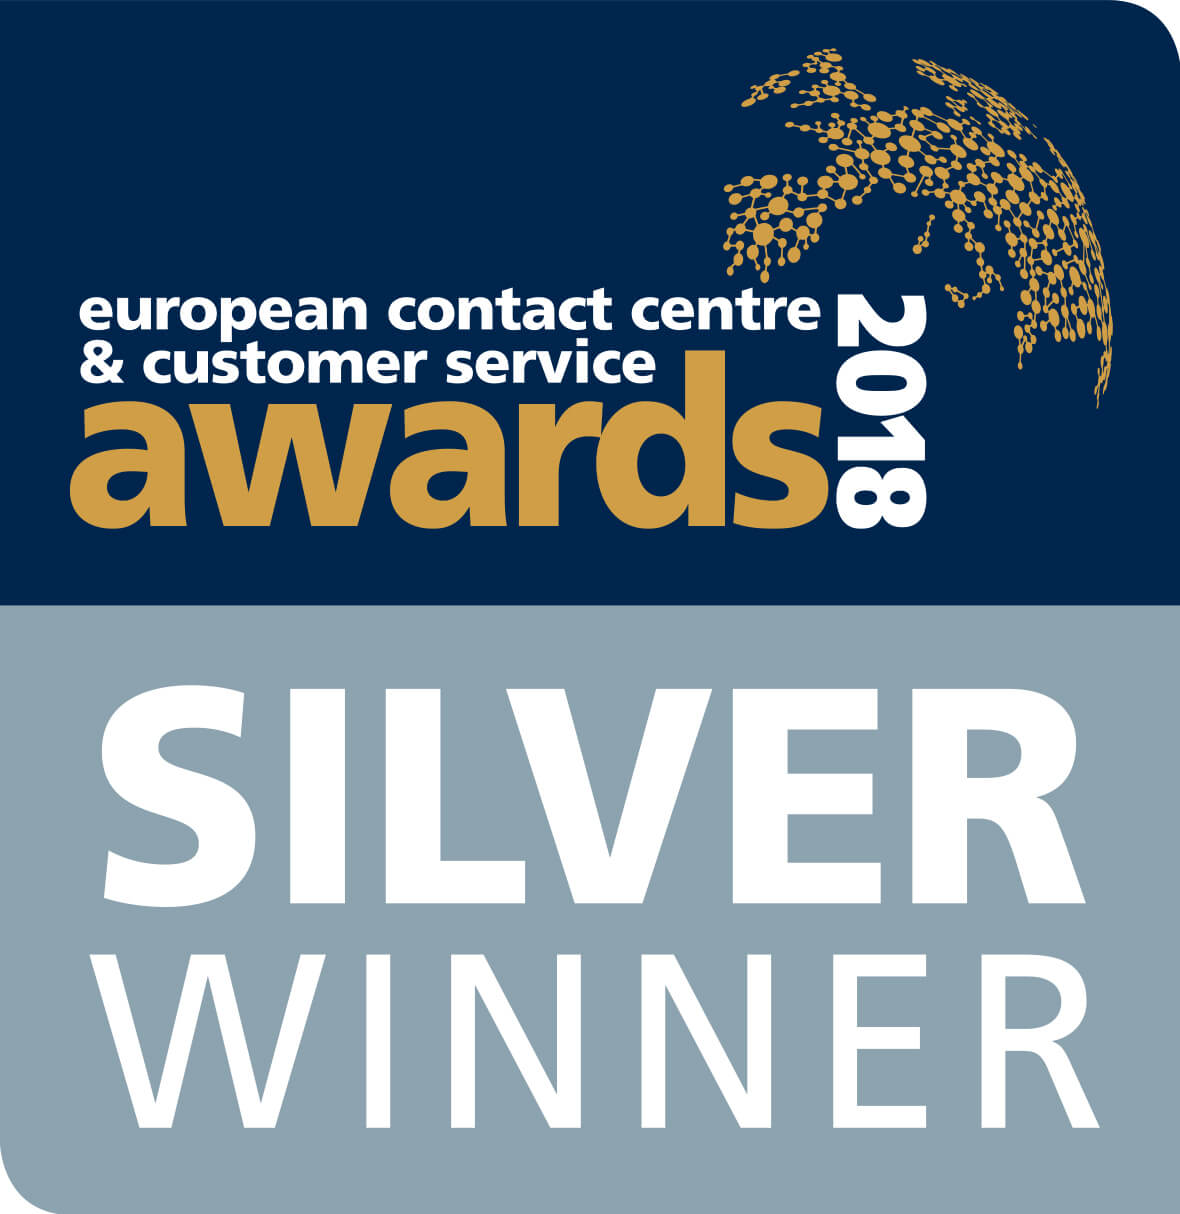 European Contact Centre & Customer Service Award 2018 - Silver Winner